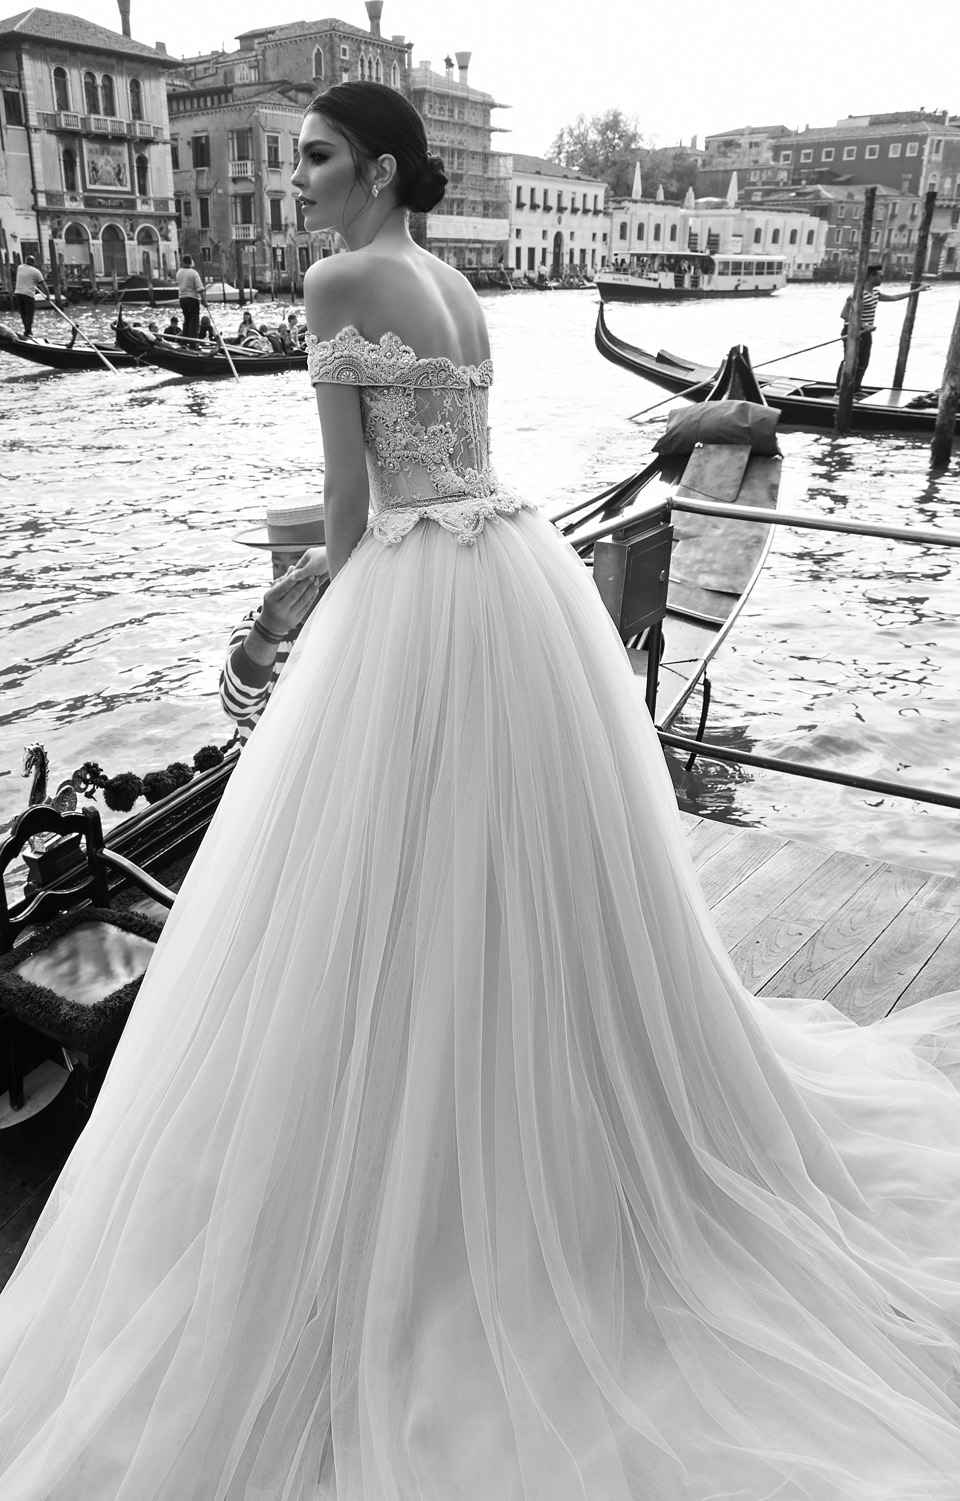 Your Invitation To View The Exquisite Inbal Dror Collections At Morgan Davies London 20th-28th March 2015